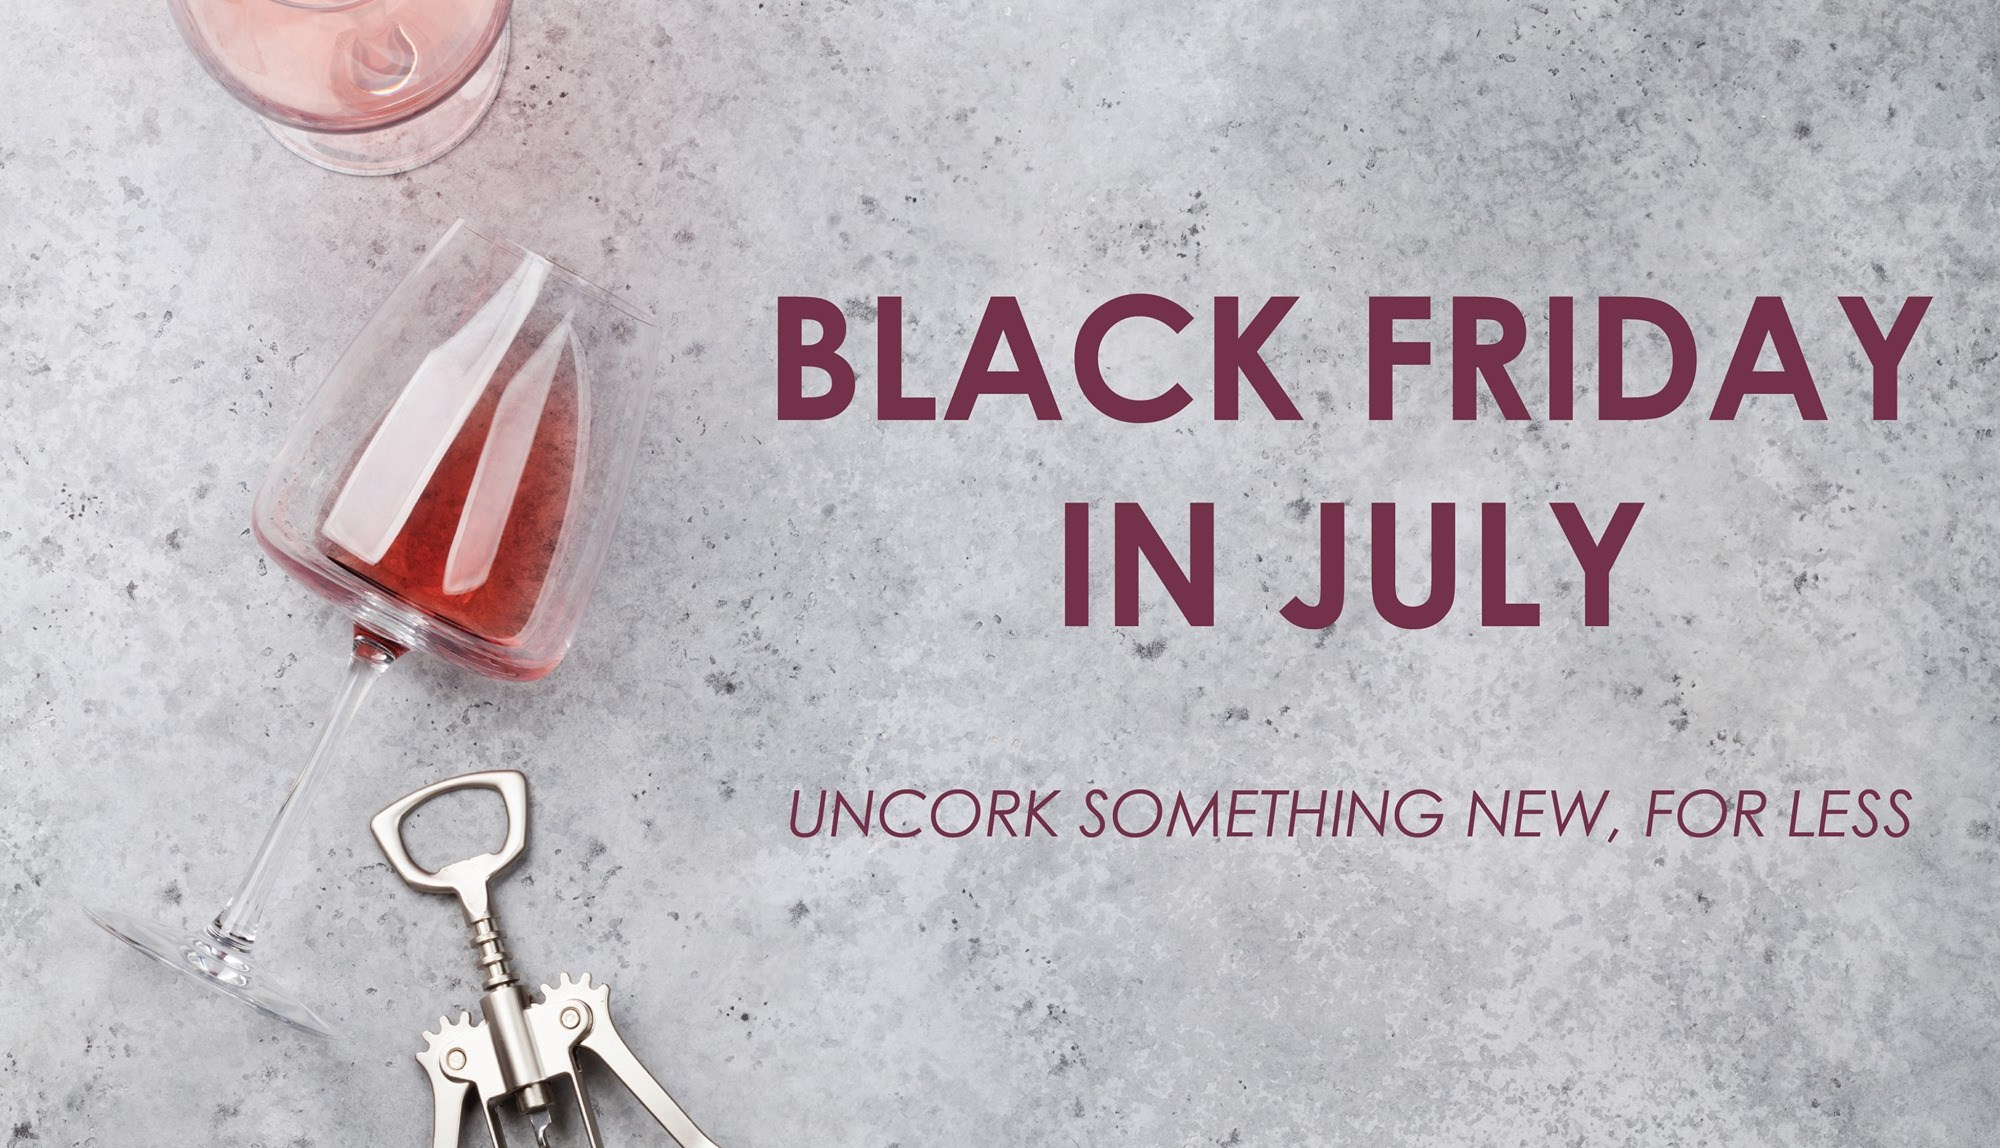 The Wine Cellar at Red Bank's Black Friday in July sale will